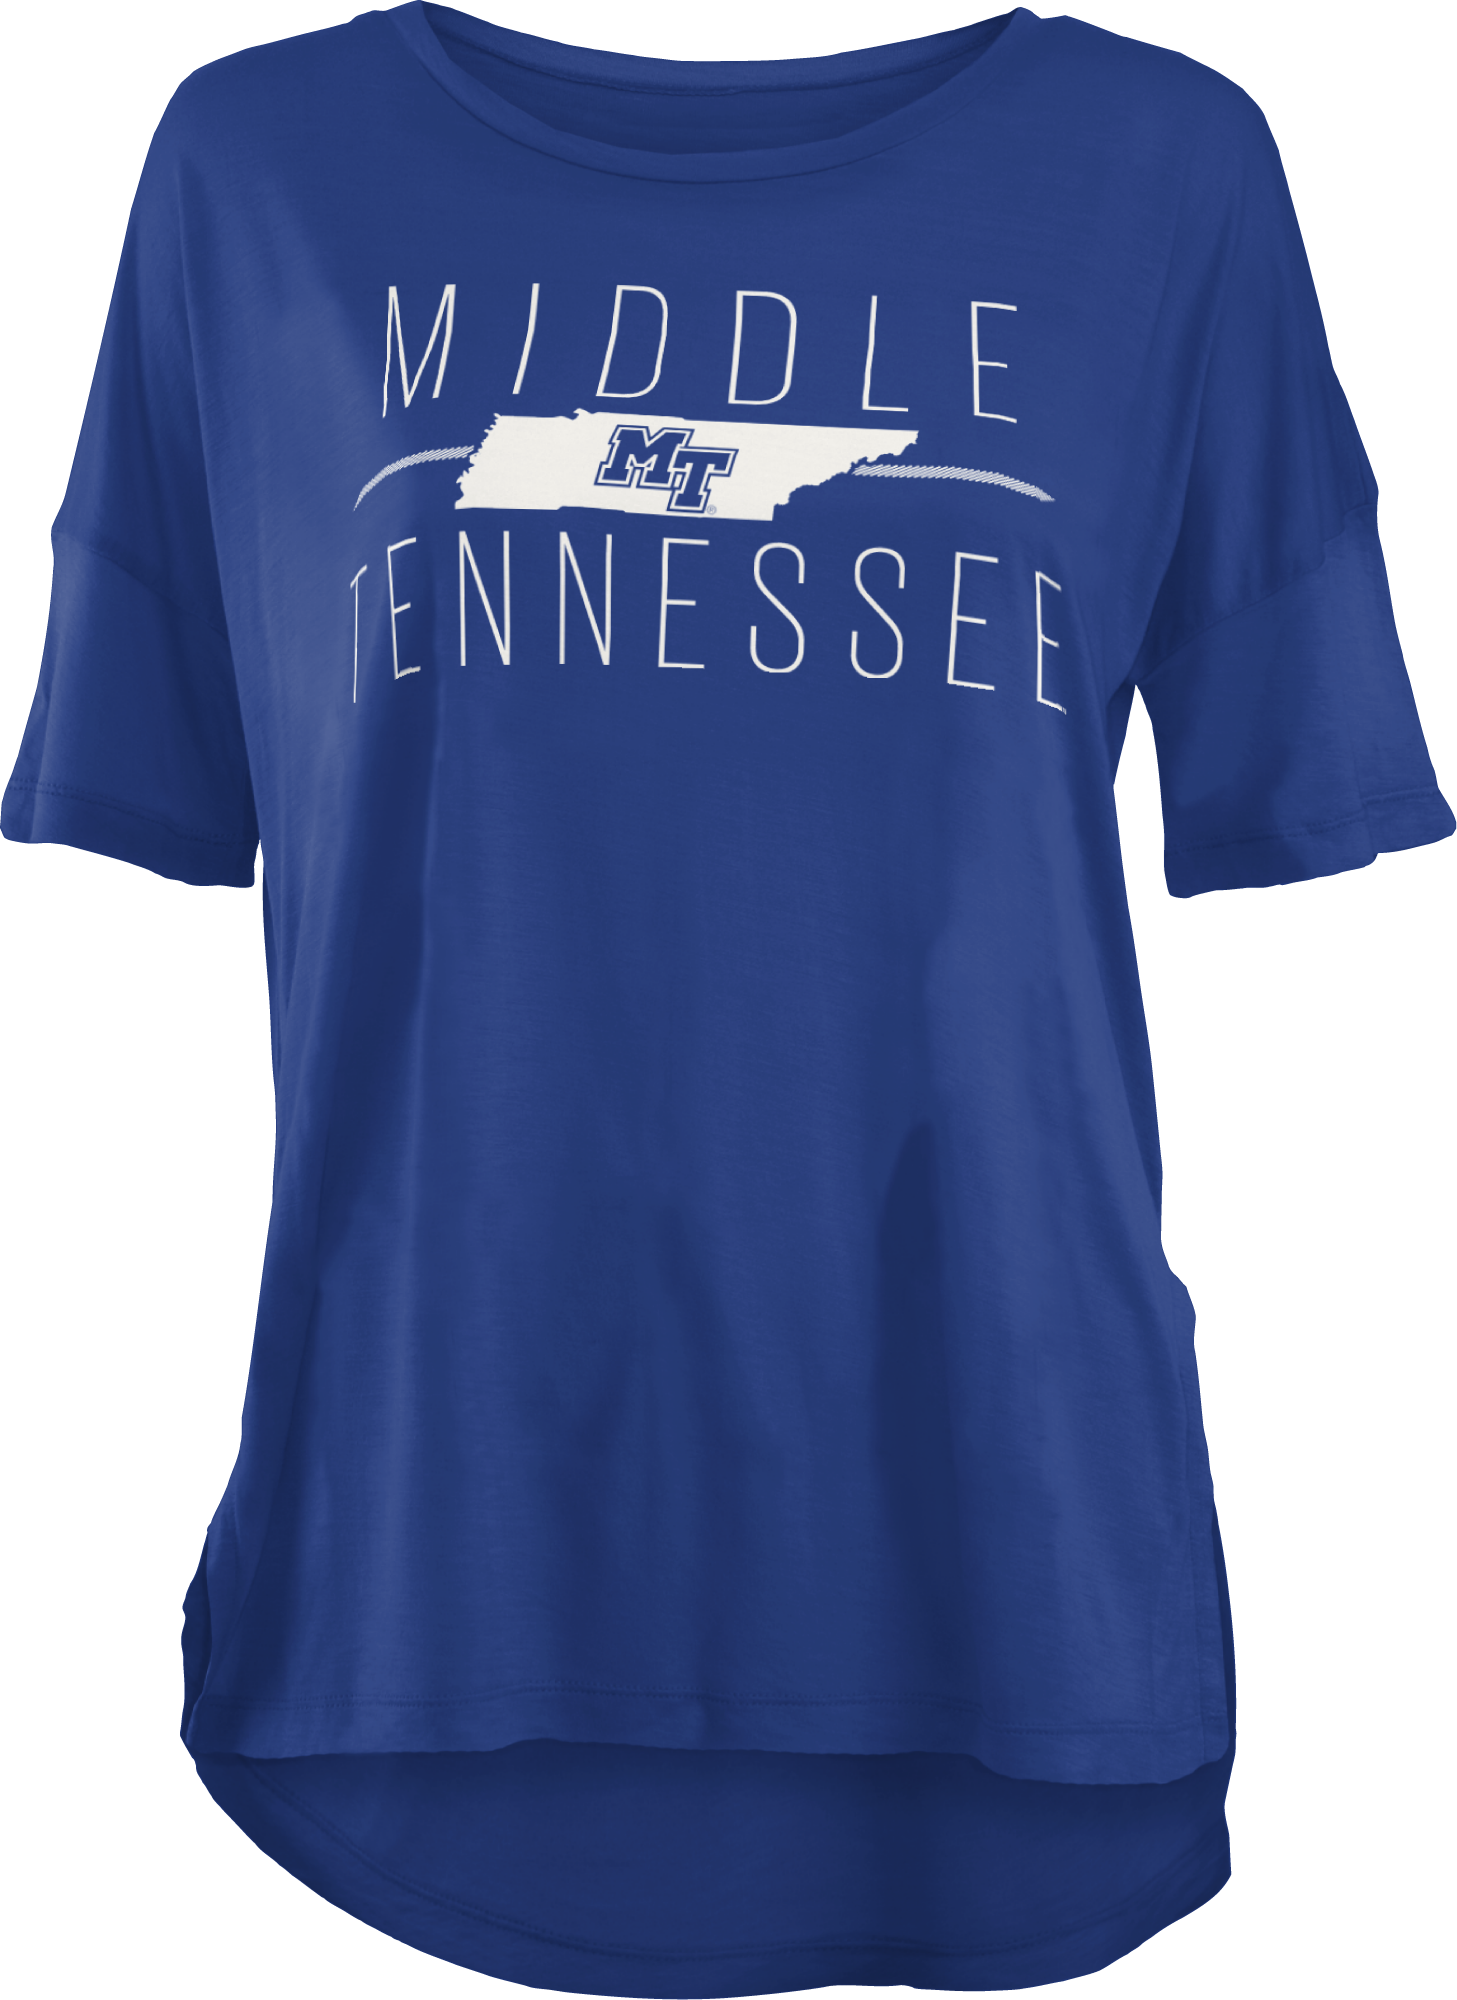 Middle Tennessee Odessa Women's Shirt